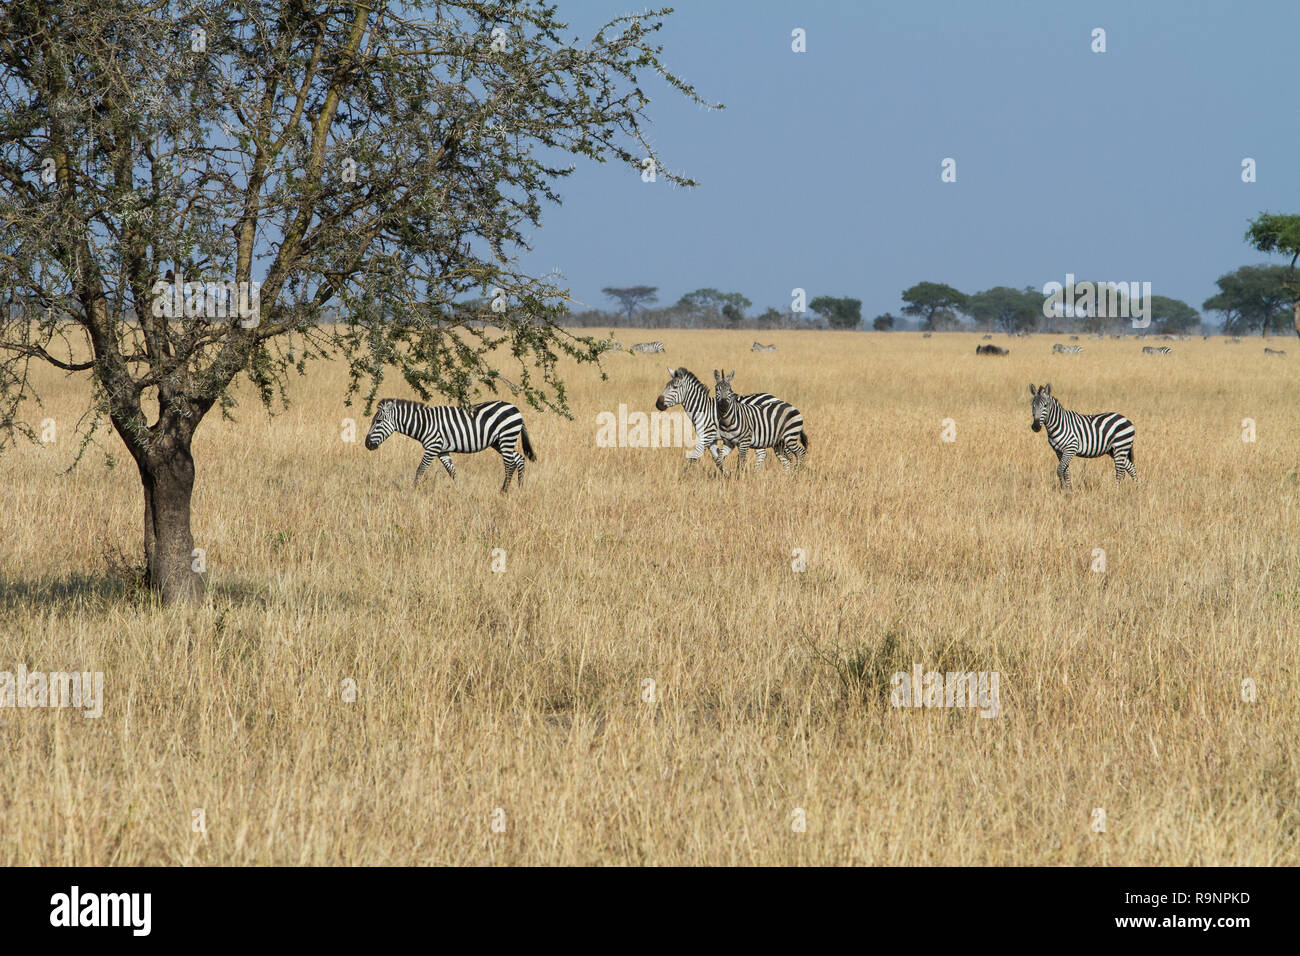 Heard of Zebra in meadow - Stock Image